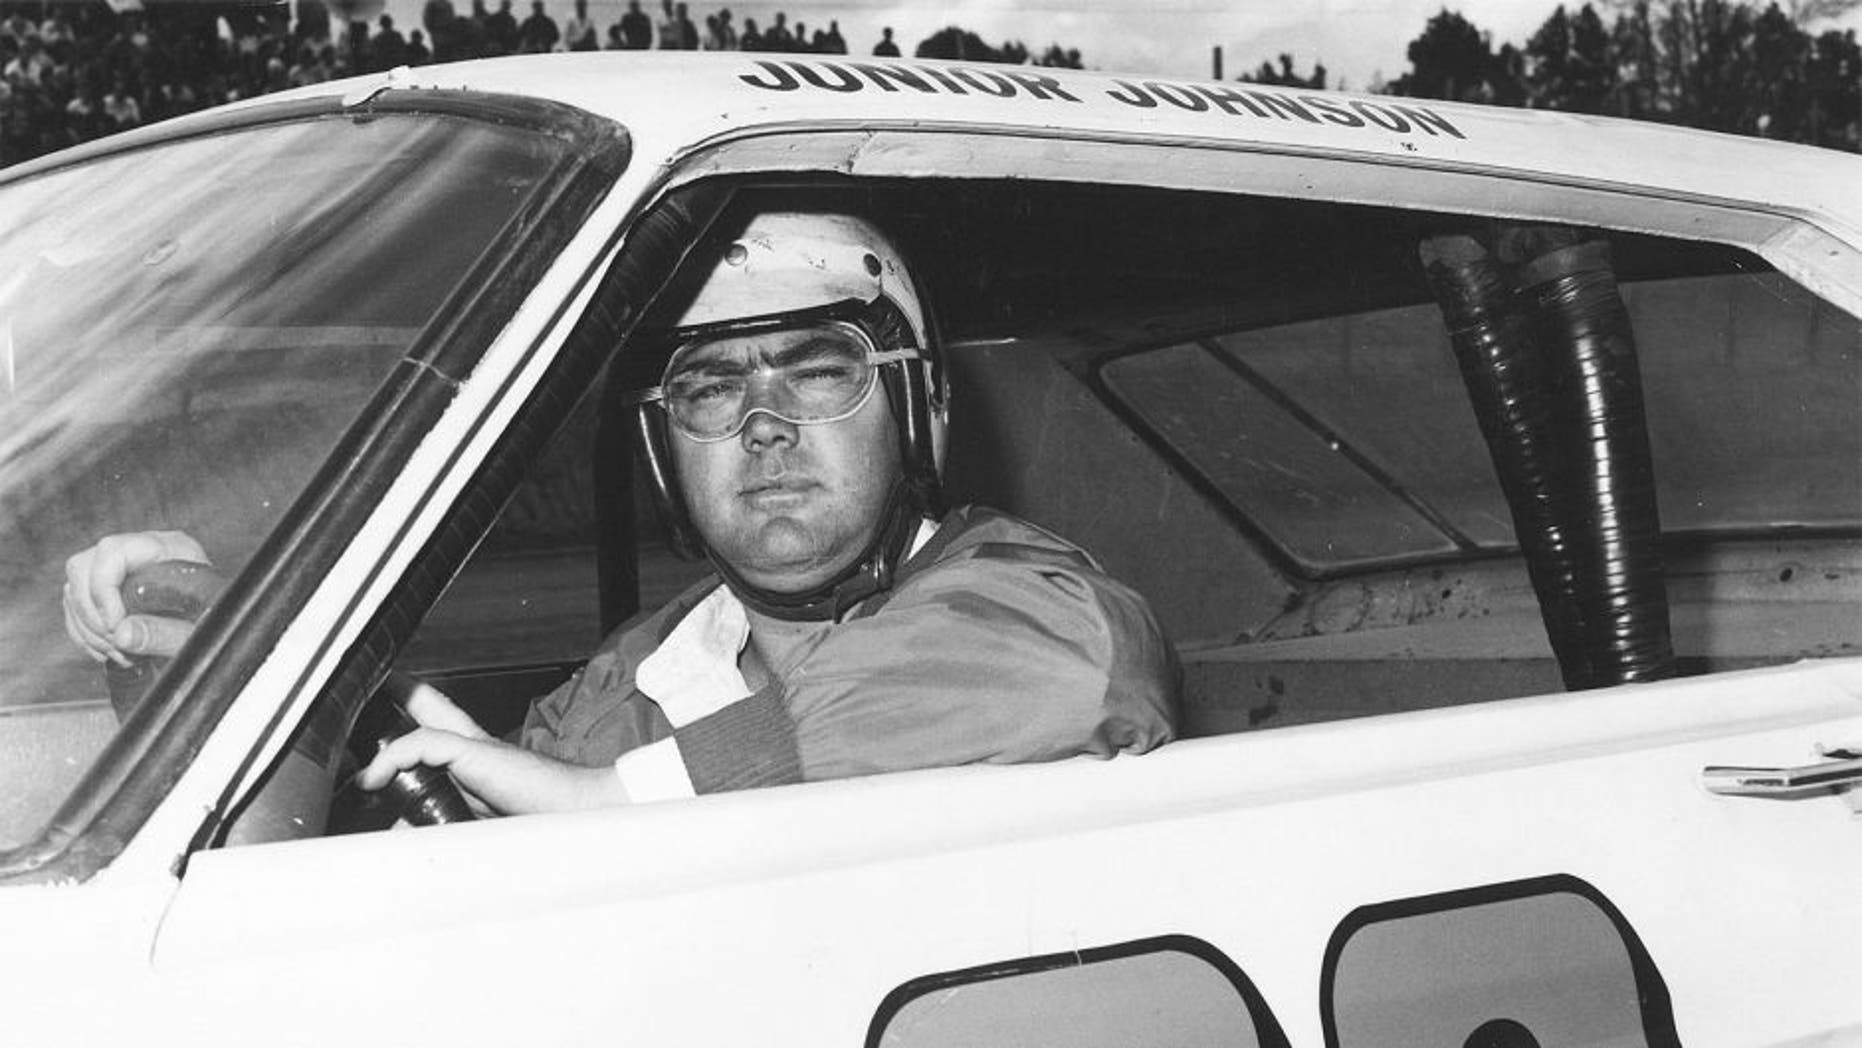 Junior Johnson, winner of the 1965 Rebel 300. (Photo by ISC Archives via Getty Images)